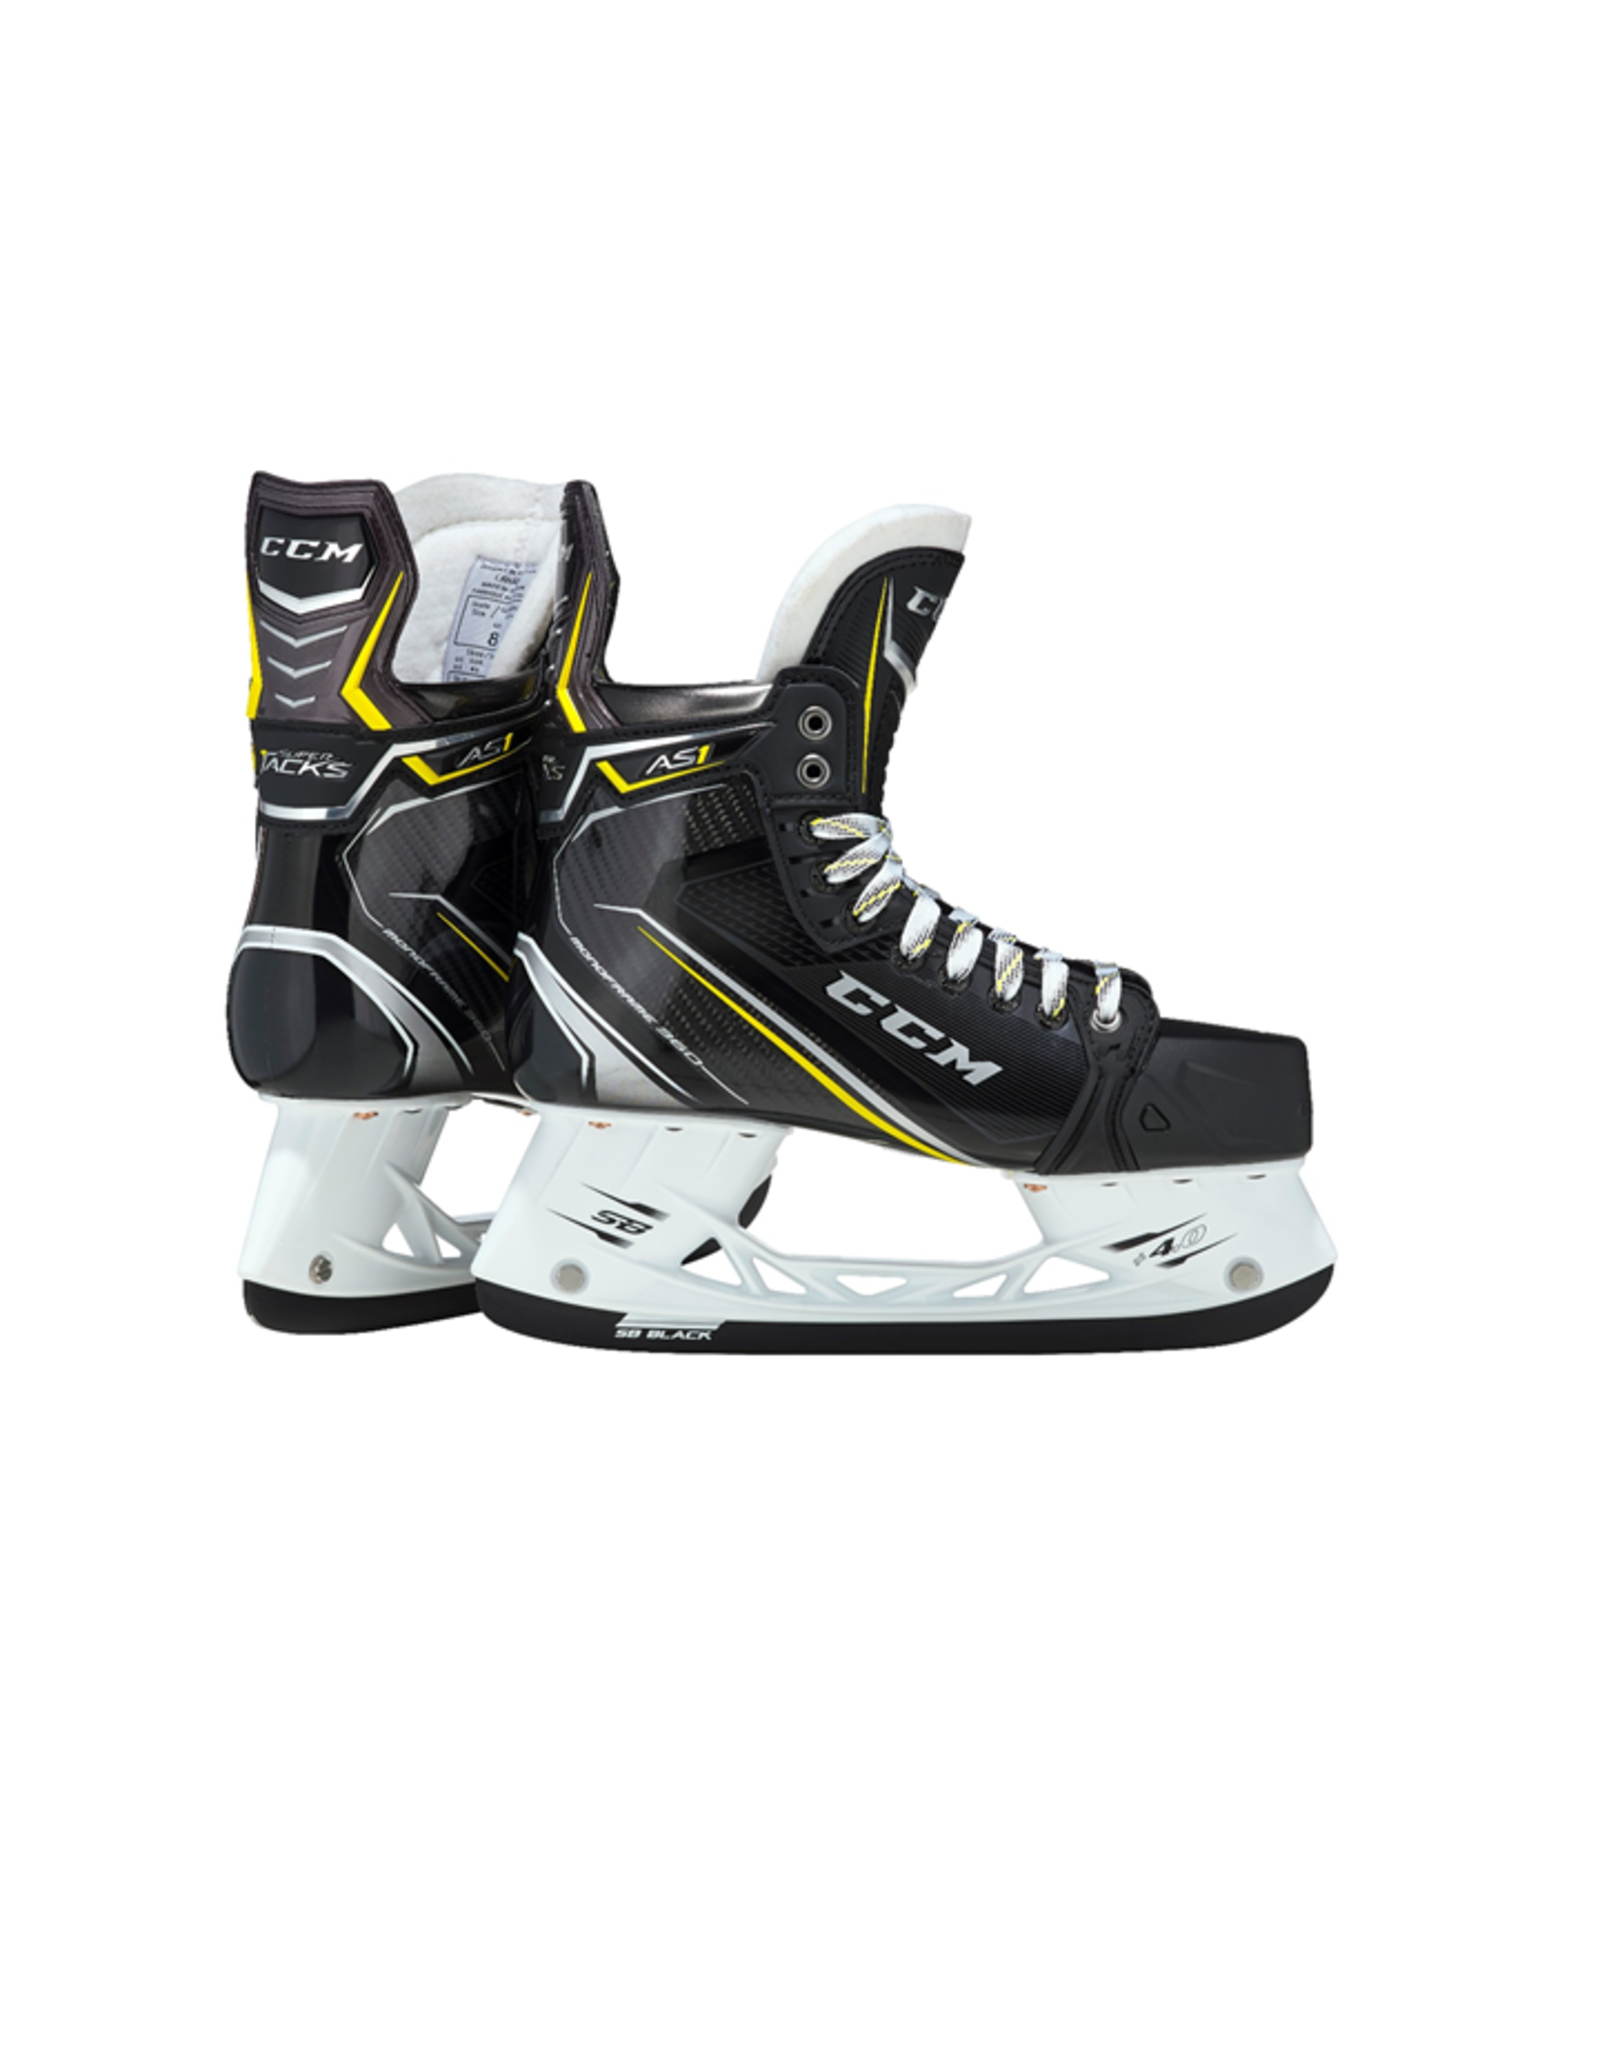 CCM Super Tacks AS1 Youth Hockey Skates